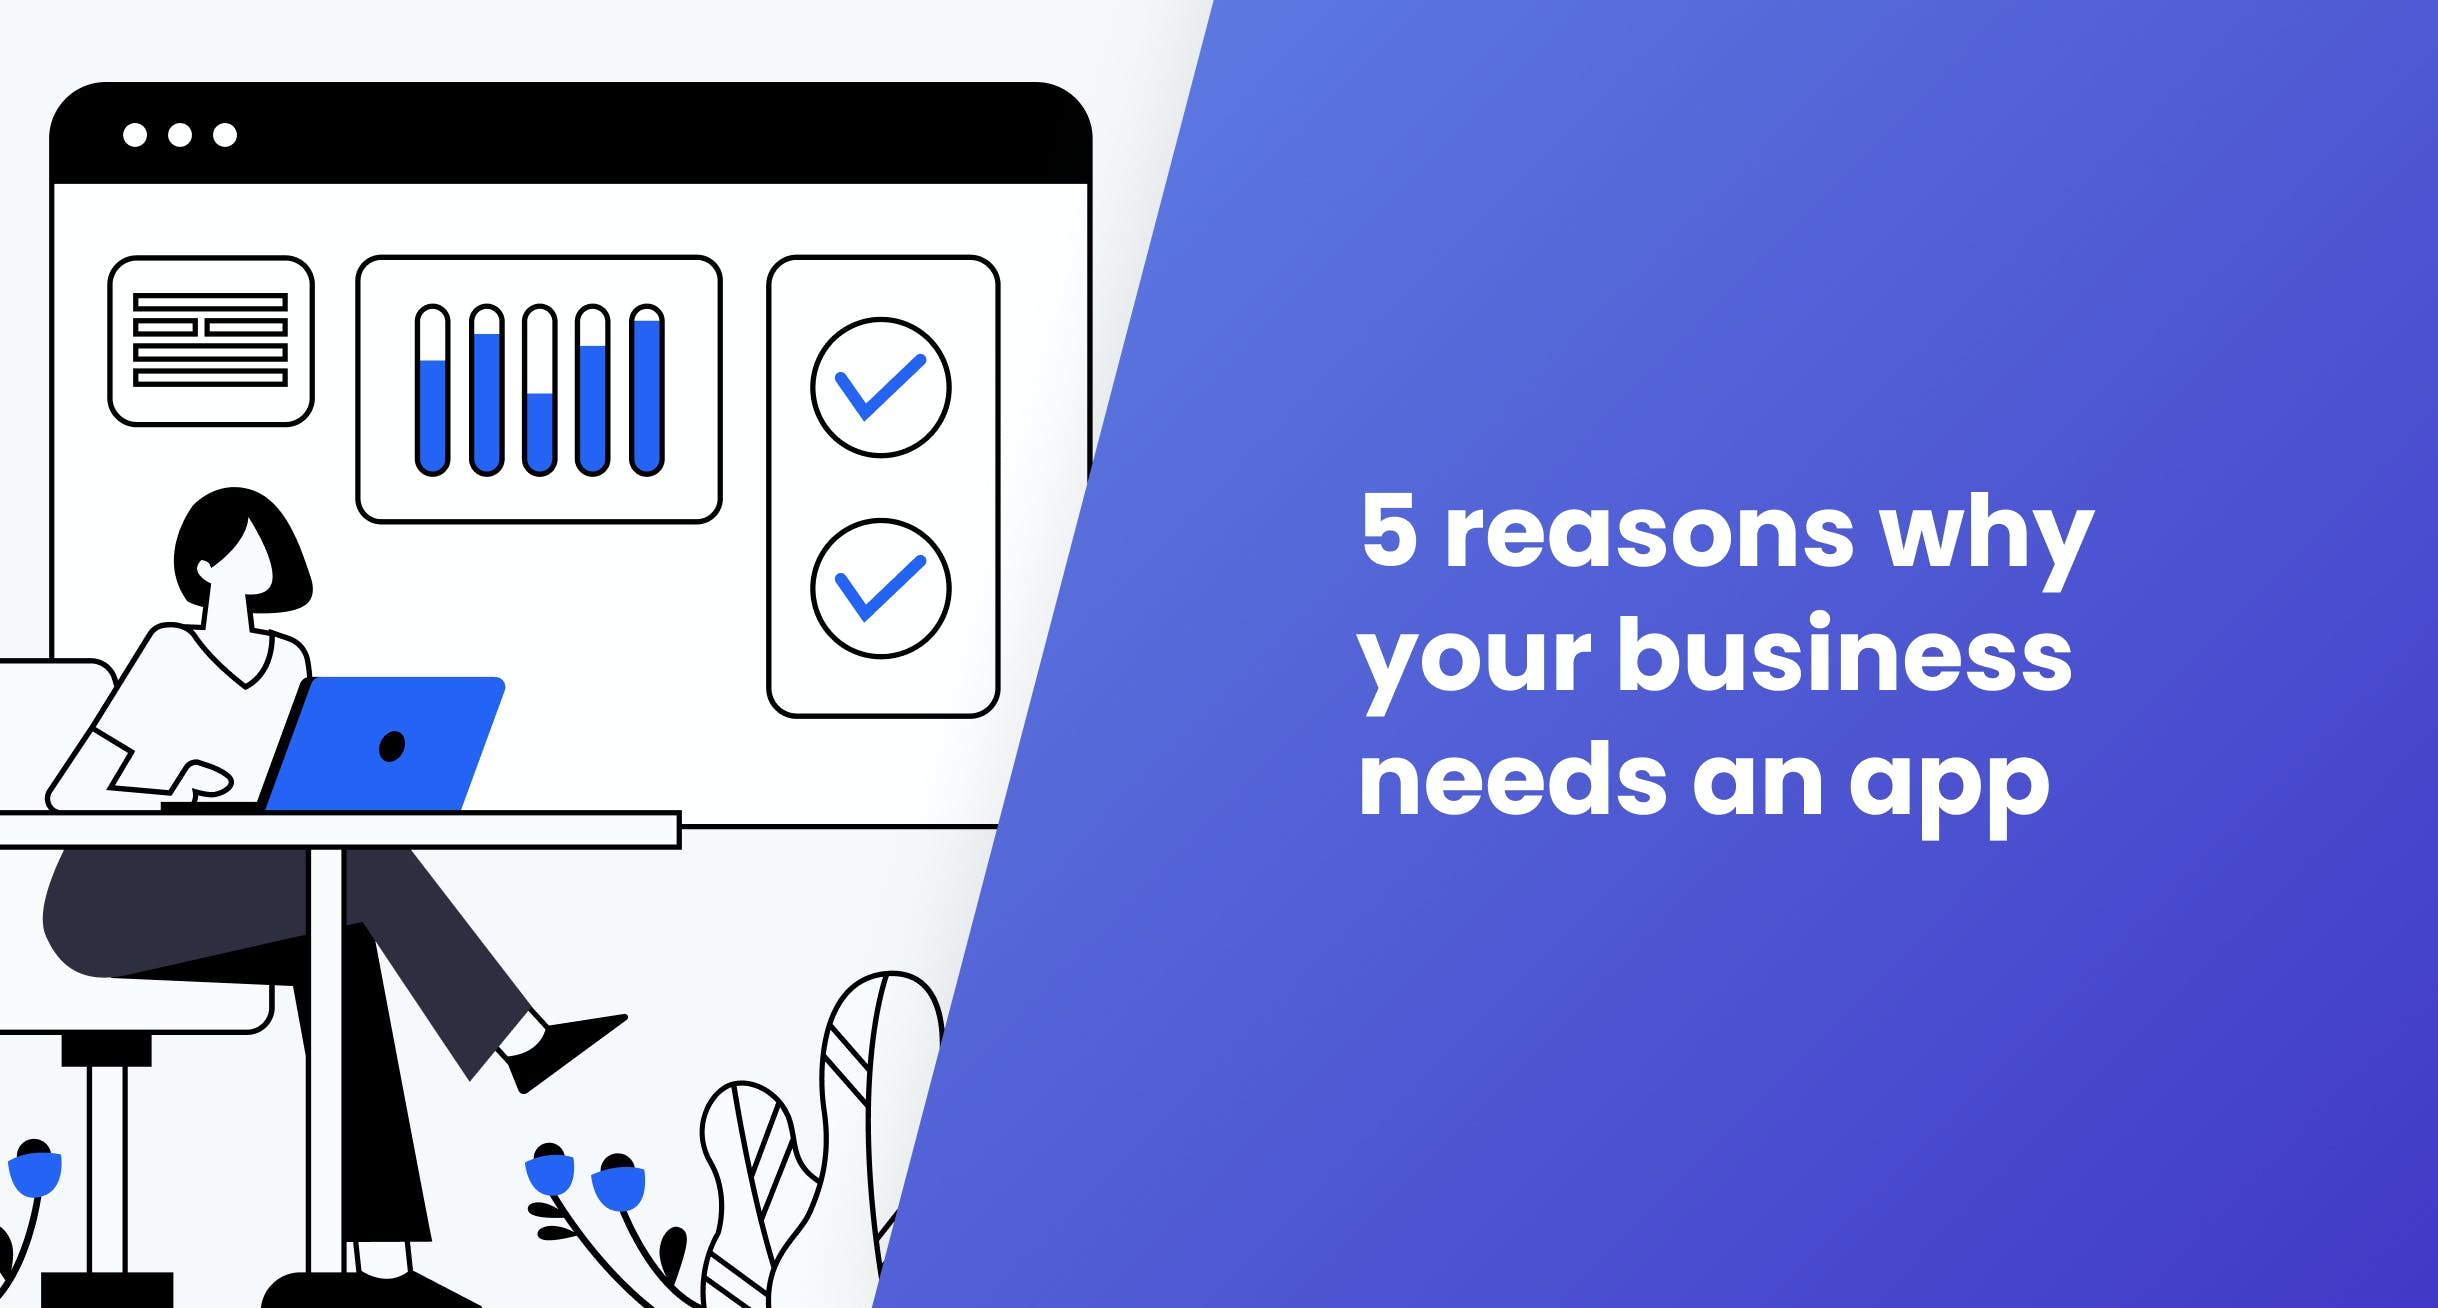 Nightborn - 5 reasons why your business needs an app